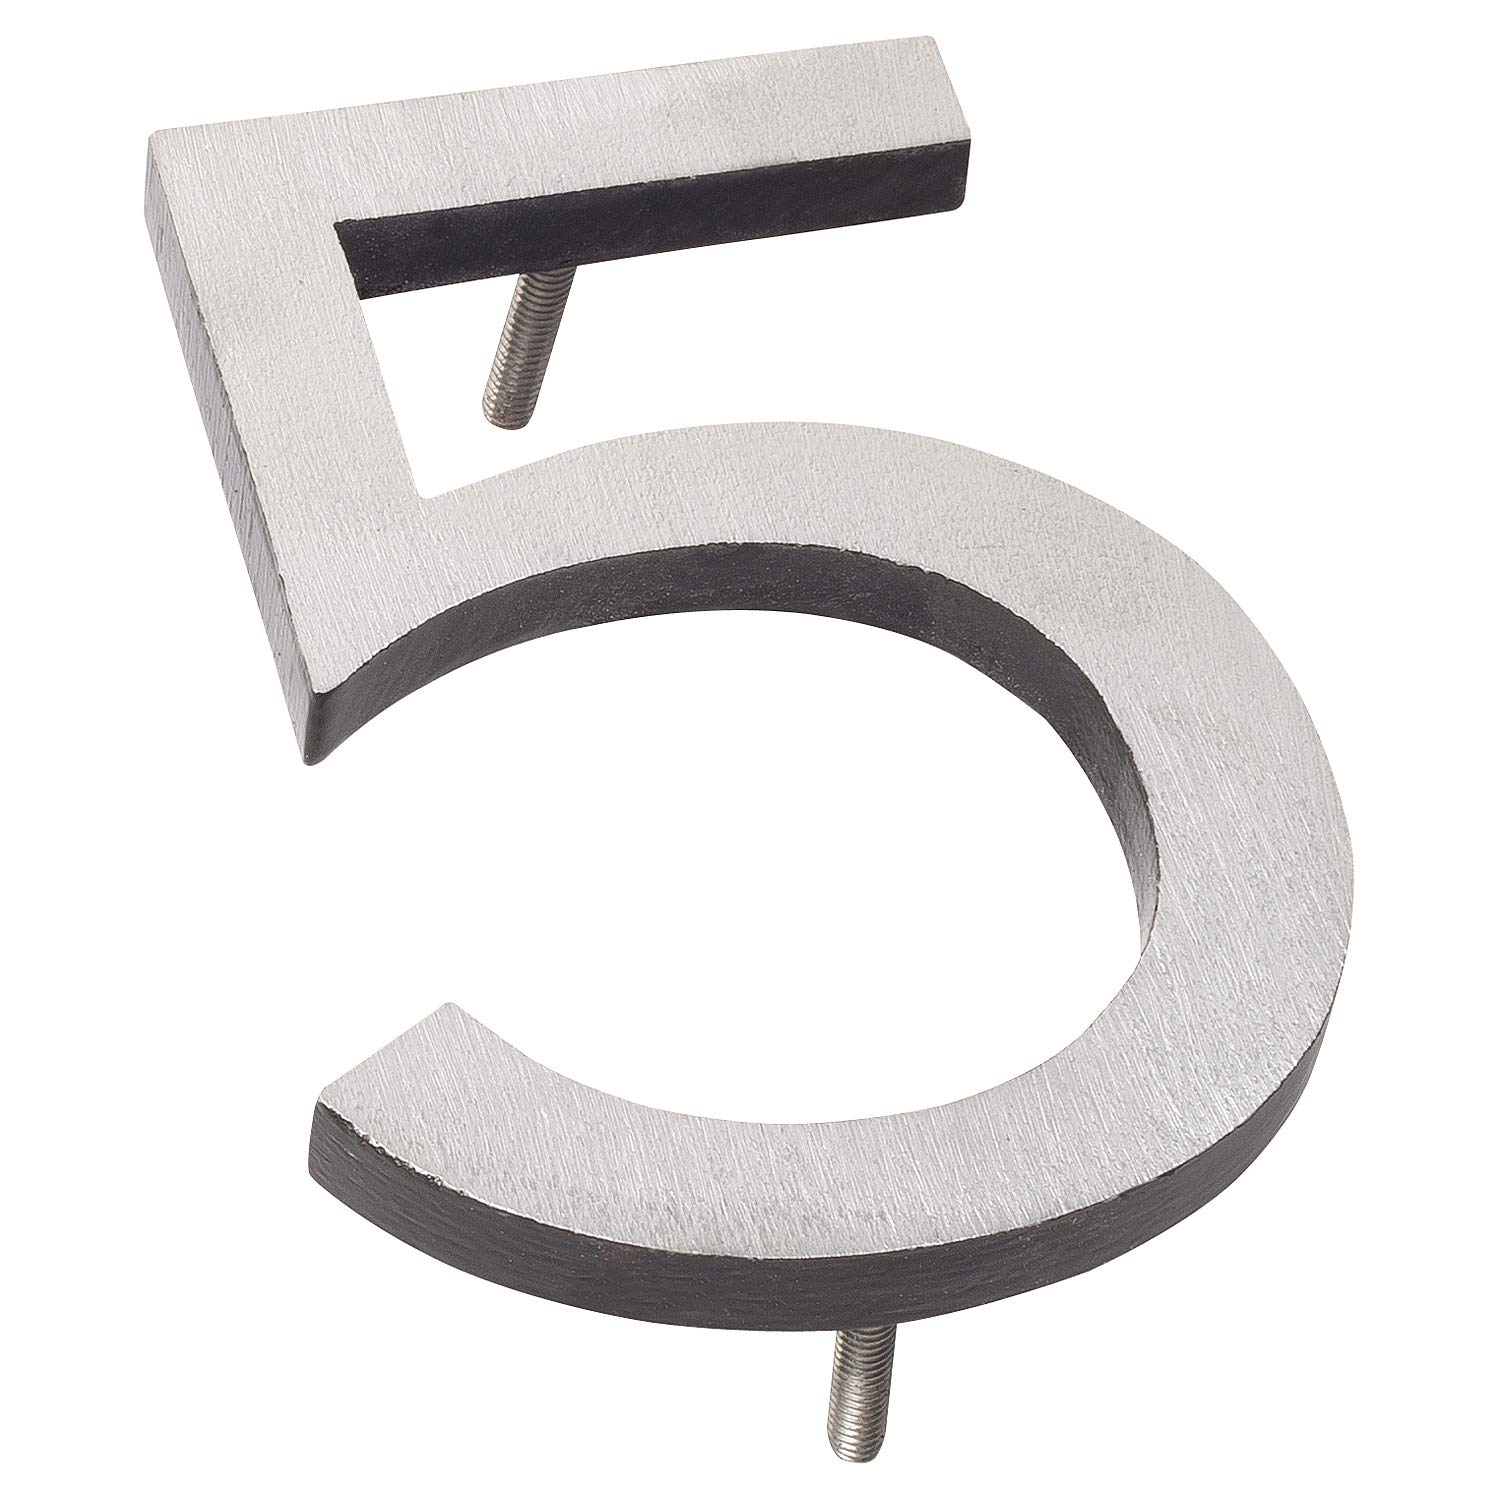 Montague Metal Products MHN-10-5-F-BK2 Floating House Number, 10 inches x 7.5 inches x 0.375 inches, Black Two Tone